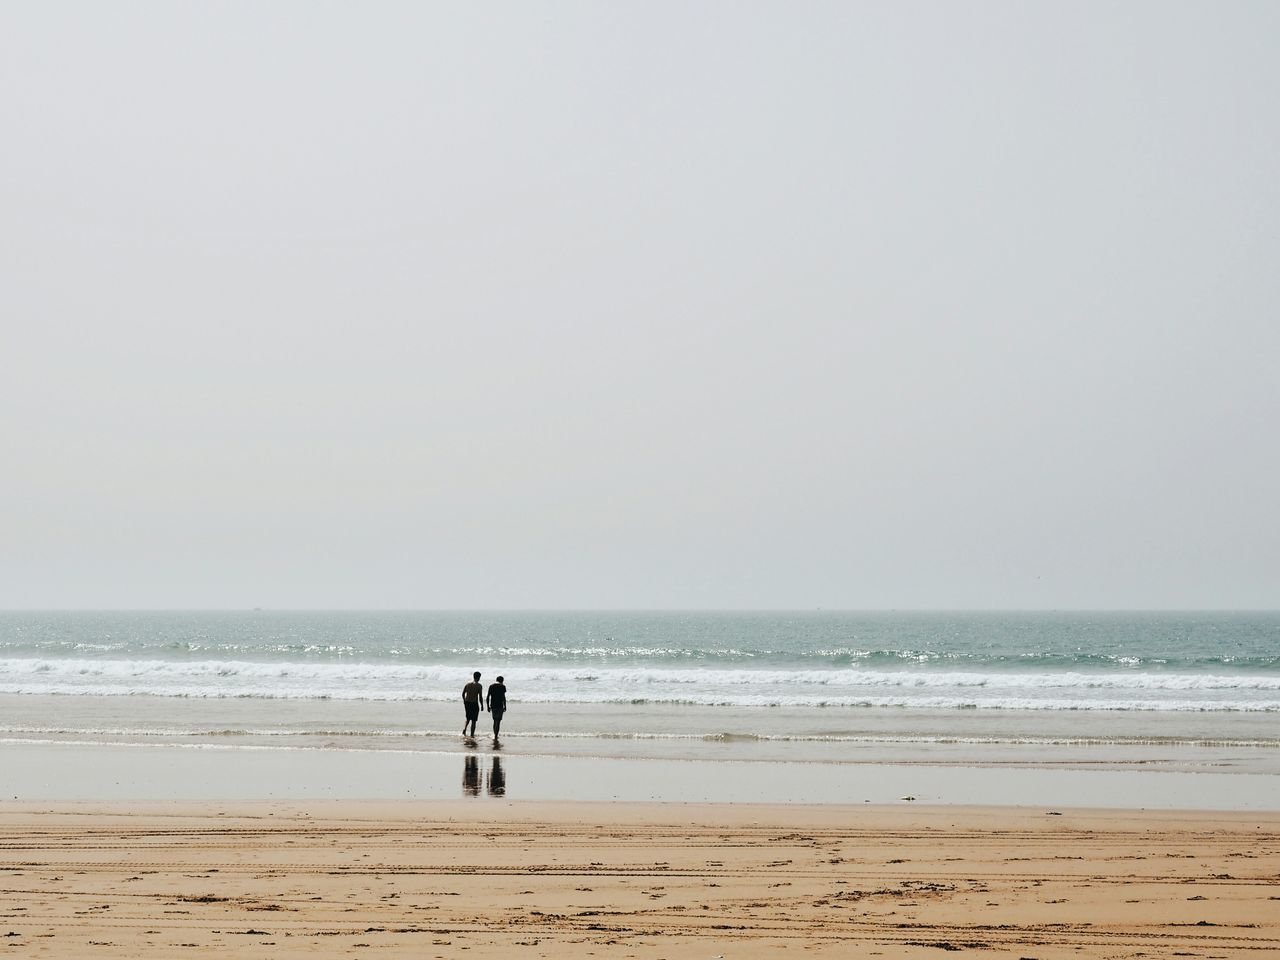 Beach Sea Sand Horizon Over Water One Person People Outdoors Real People Vacations Day Water Adult Adults Only Only Men Adults Only Taghazout Reflection Reflection_collection Silhouette Morocco Morocco 🇲🇦 Adult Scenics Tranquility Nature